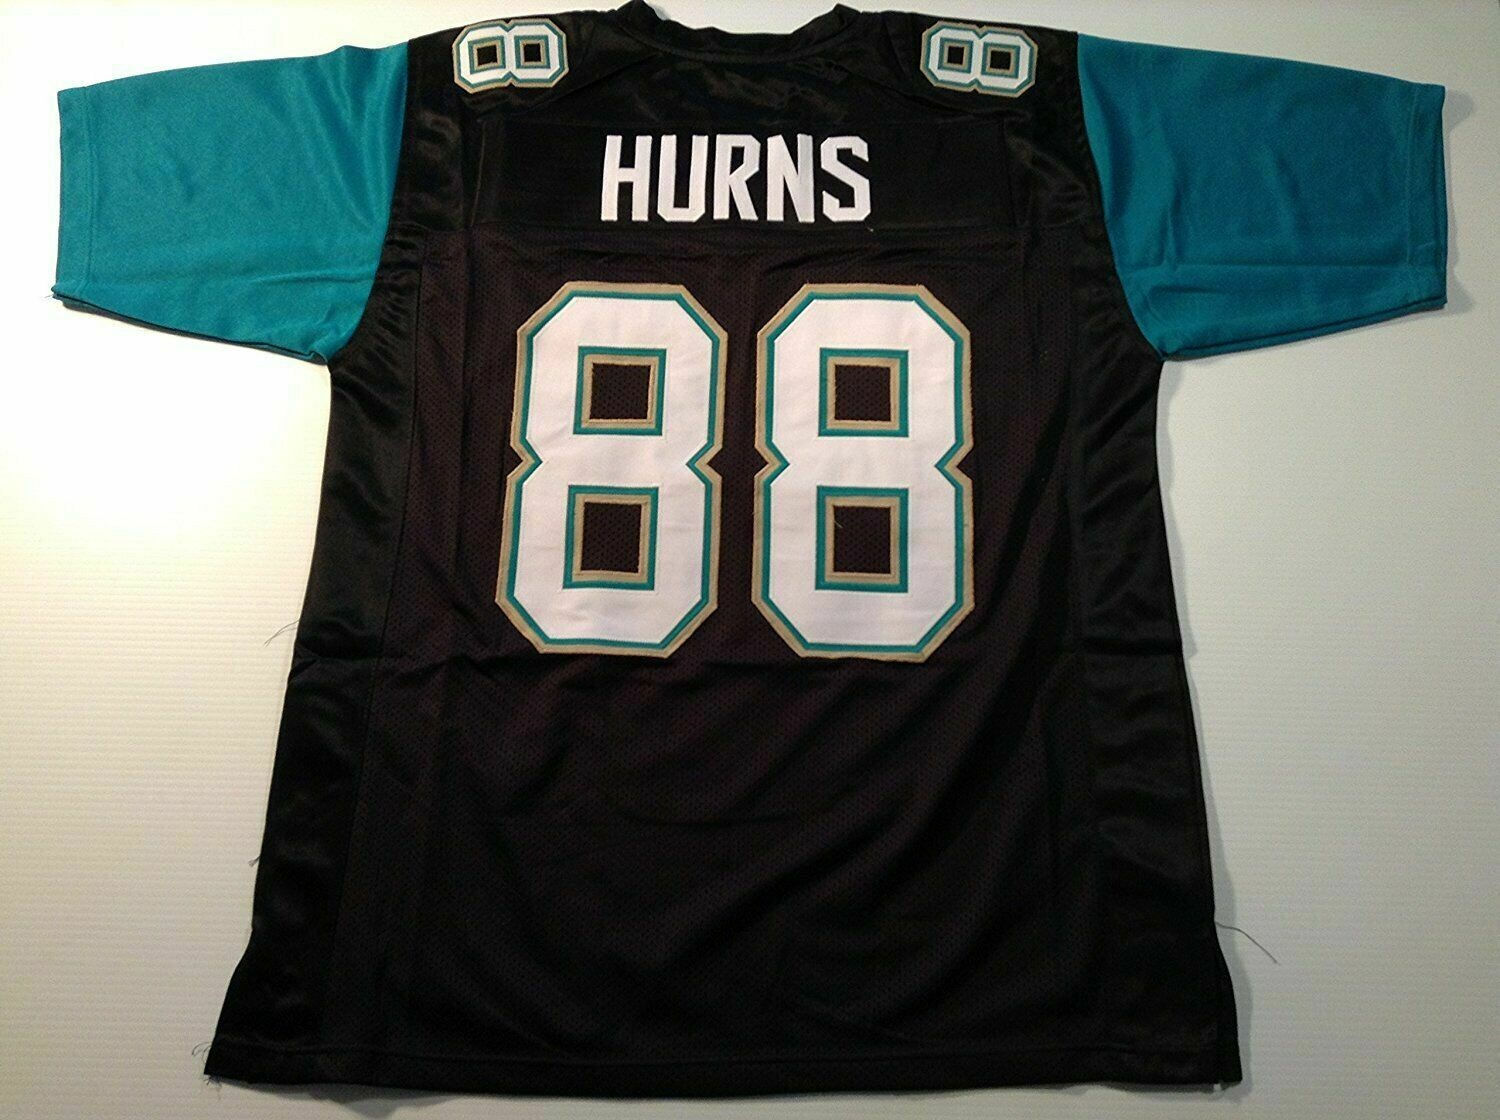 Unsigned Custom Sewn Stitched Allen Hurns Black Jersey